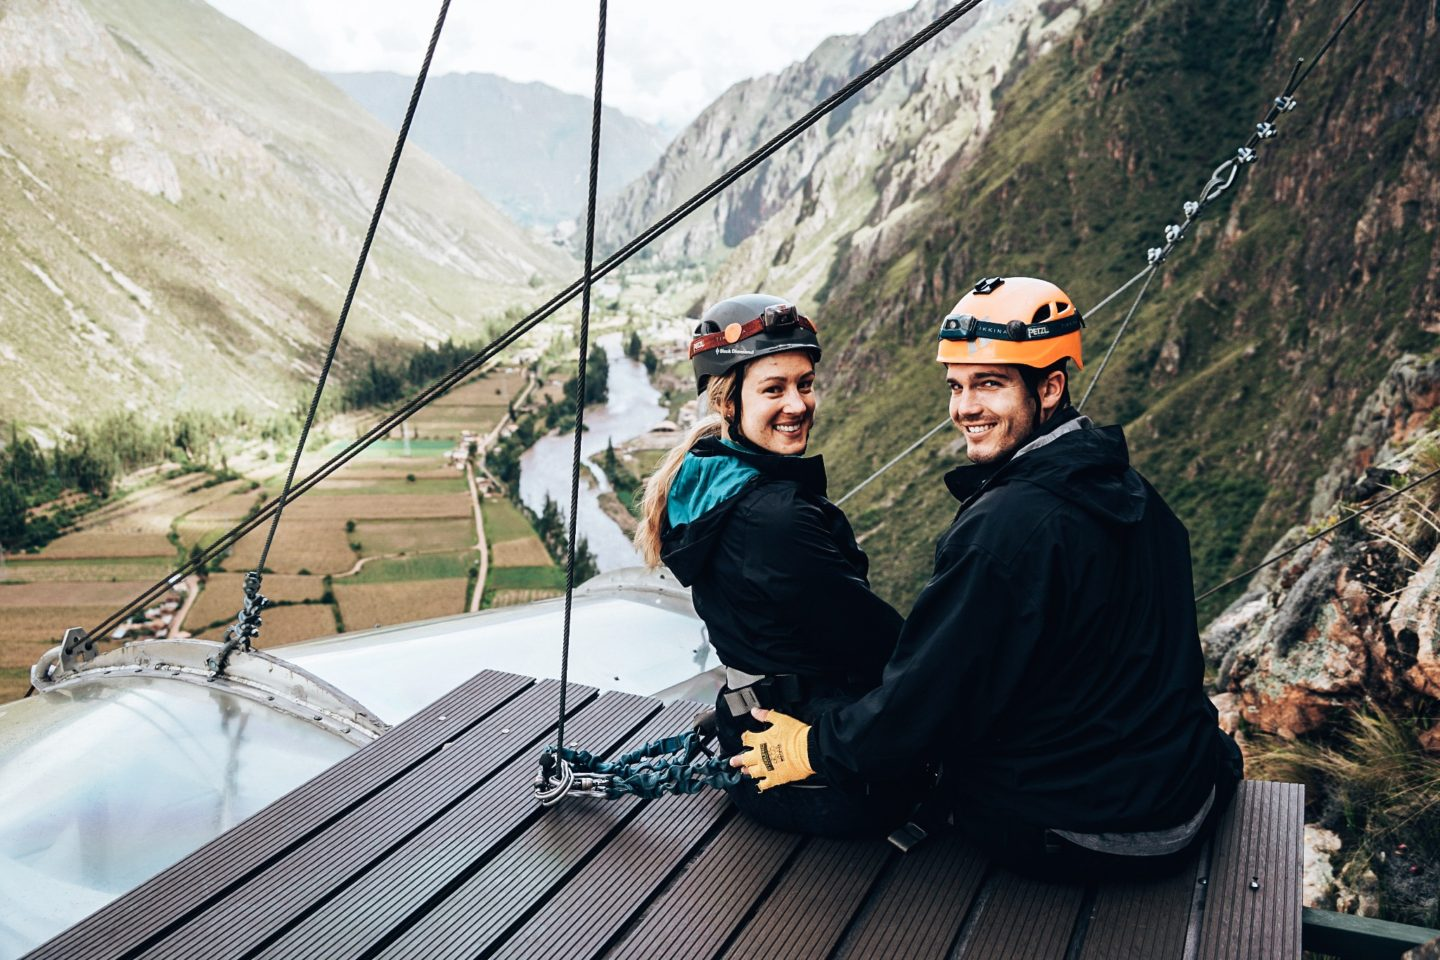 Sitting on the very edge of our Skylodge adventure suite in the Sacred Valley of Peru